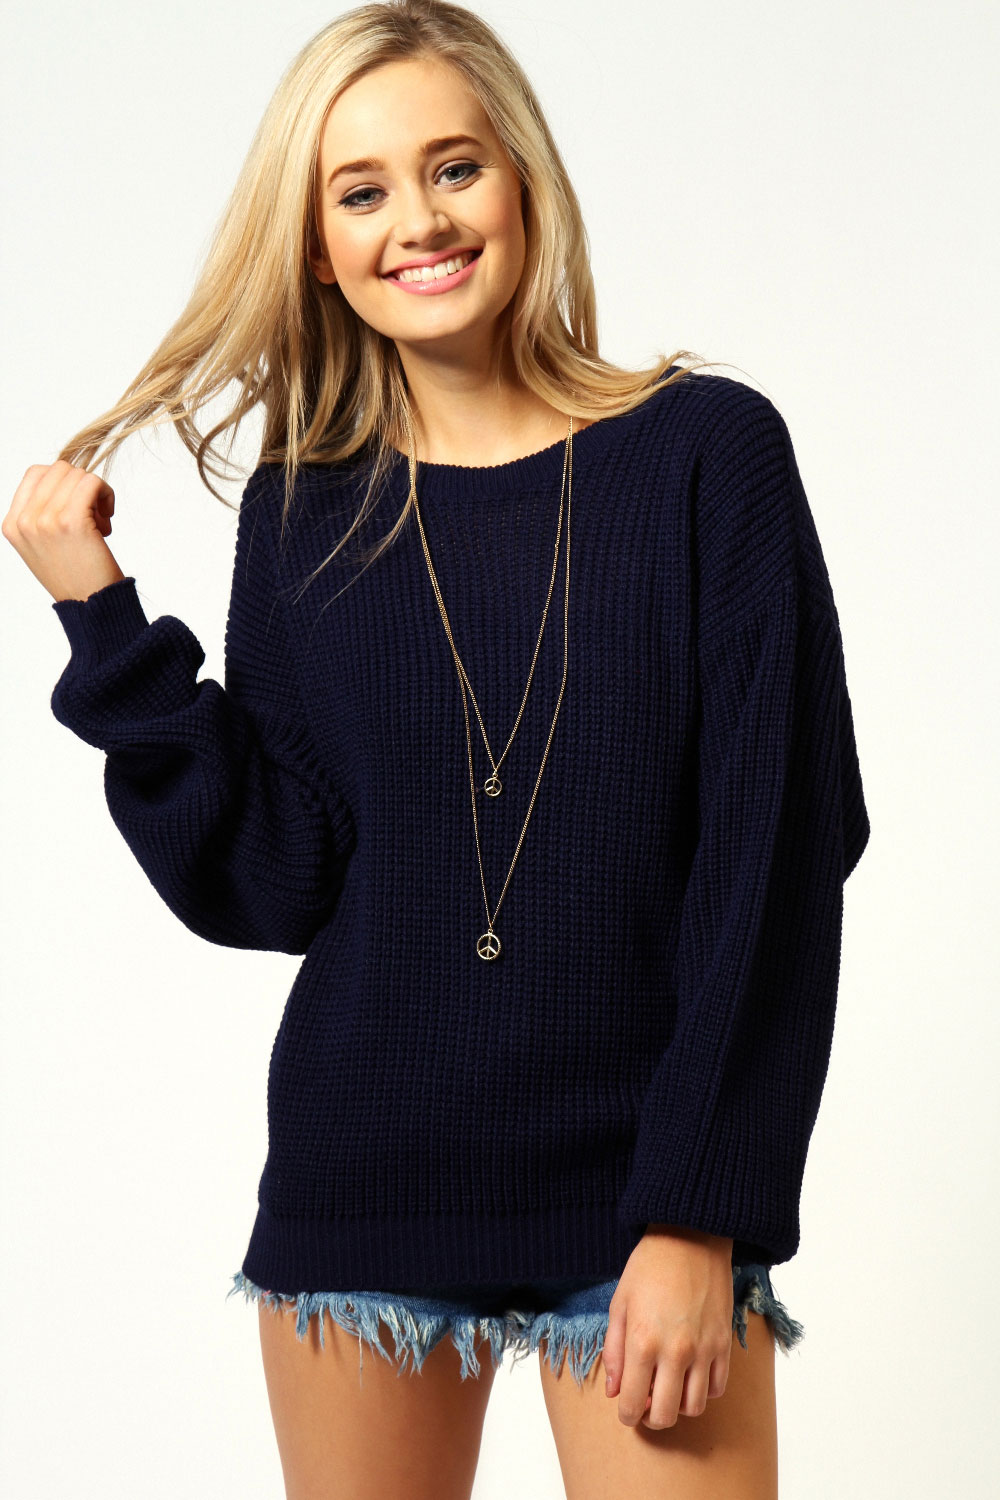 Women's Jumpers Discover statement ladies' jumpers from Tommy Hilfiger, Tommy Jeans and Hilfiger Collection. Cashmere jumpers are a timeless investment, elevating any look with the look and feel of .